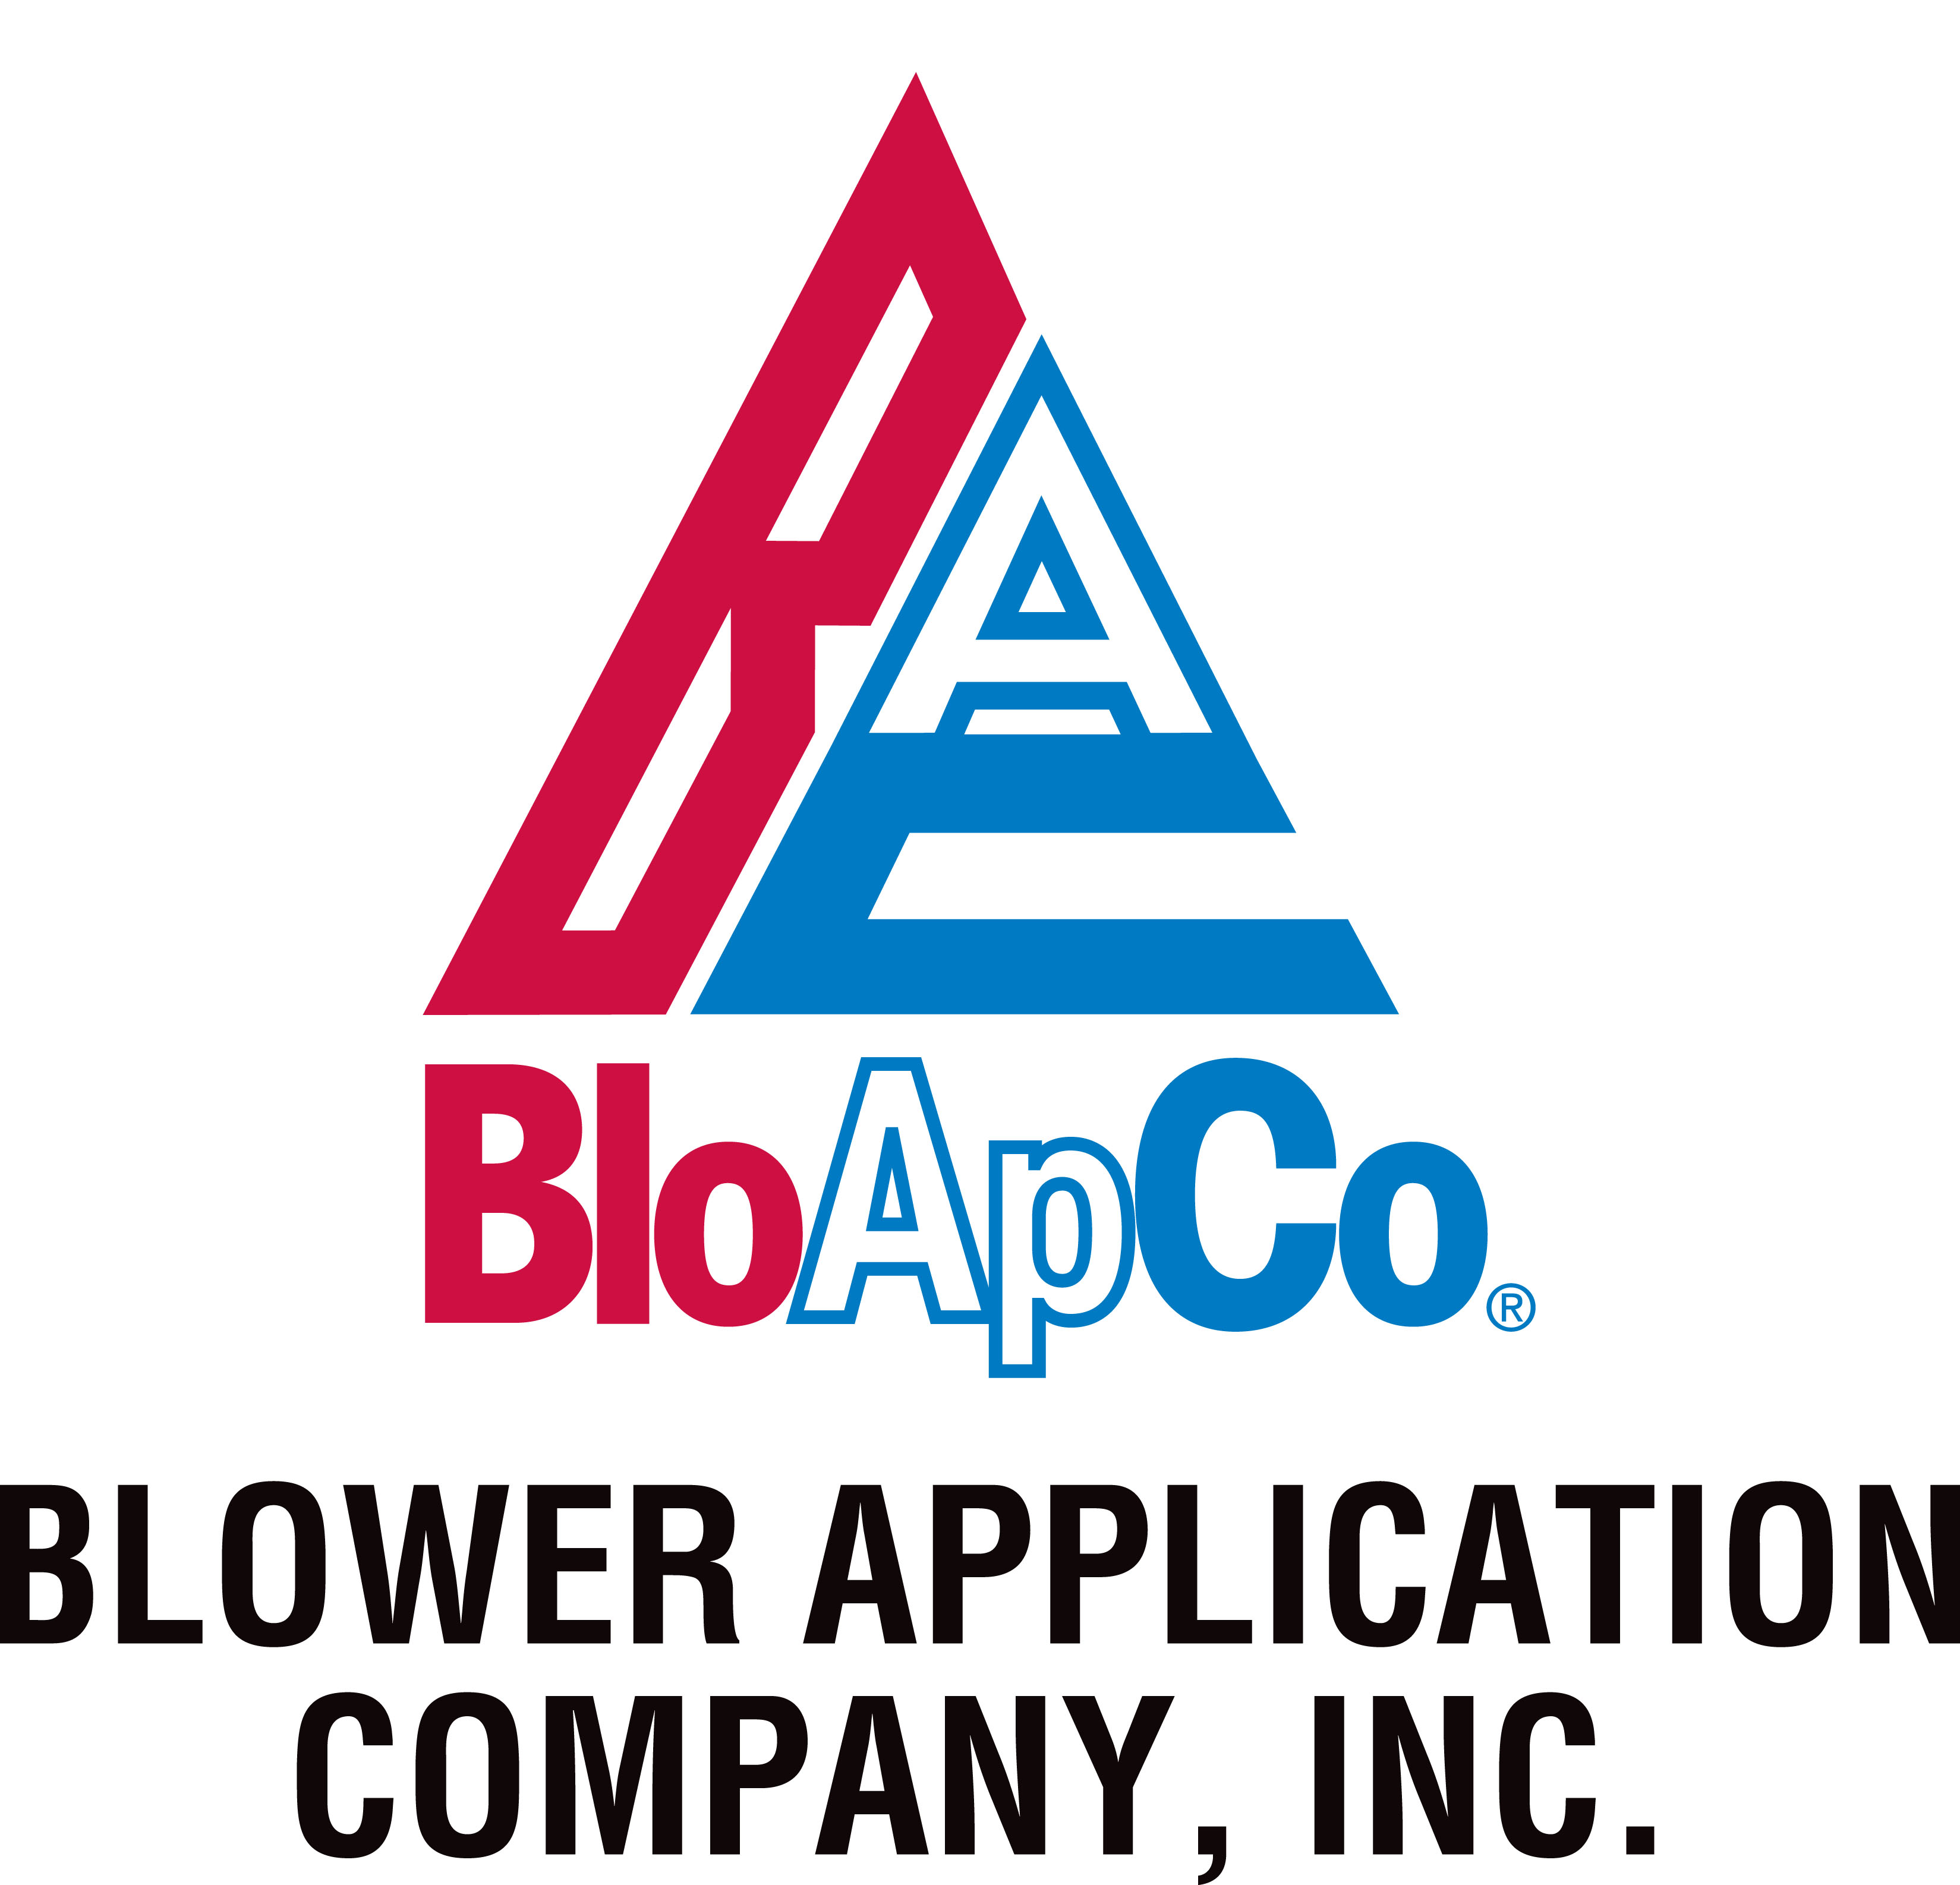 Blower%20Application%20Co%20(BloApCo)%20Logo - Blower Application Co Germantown Wi